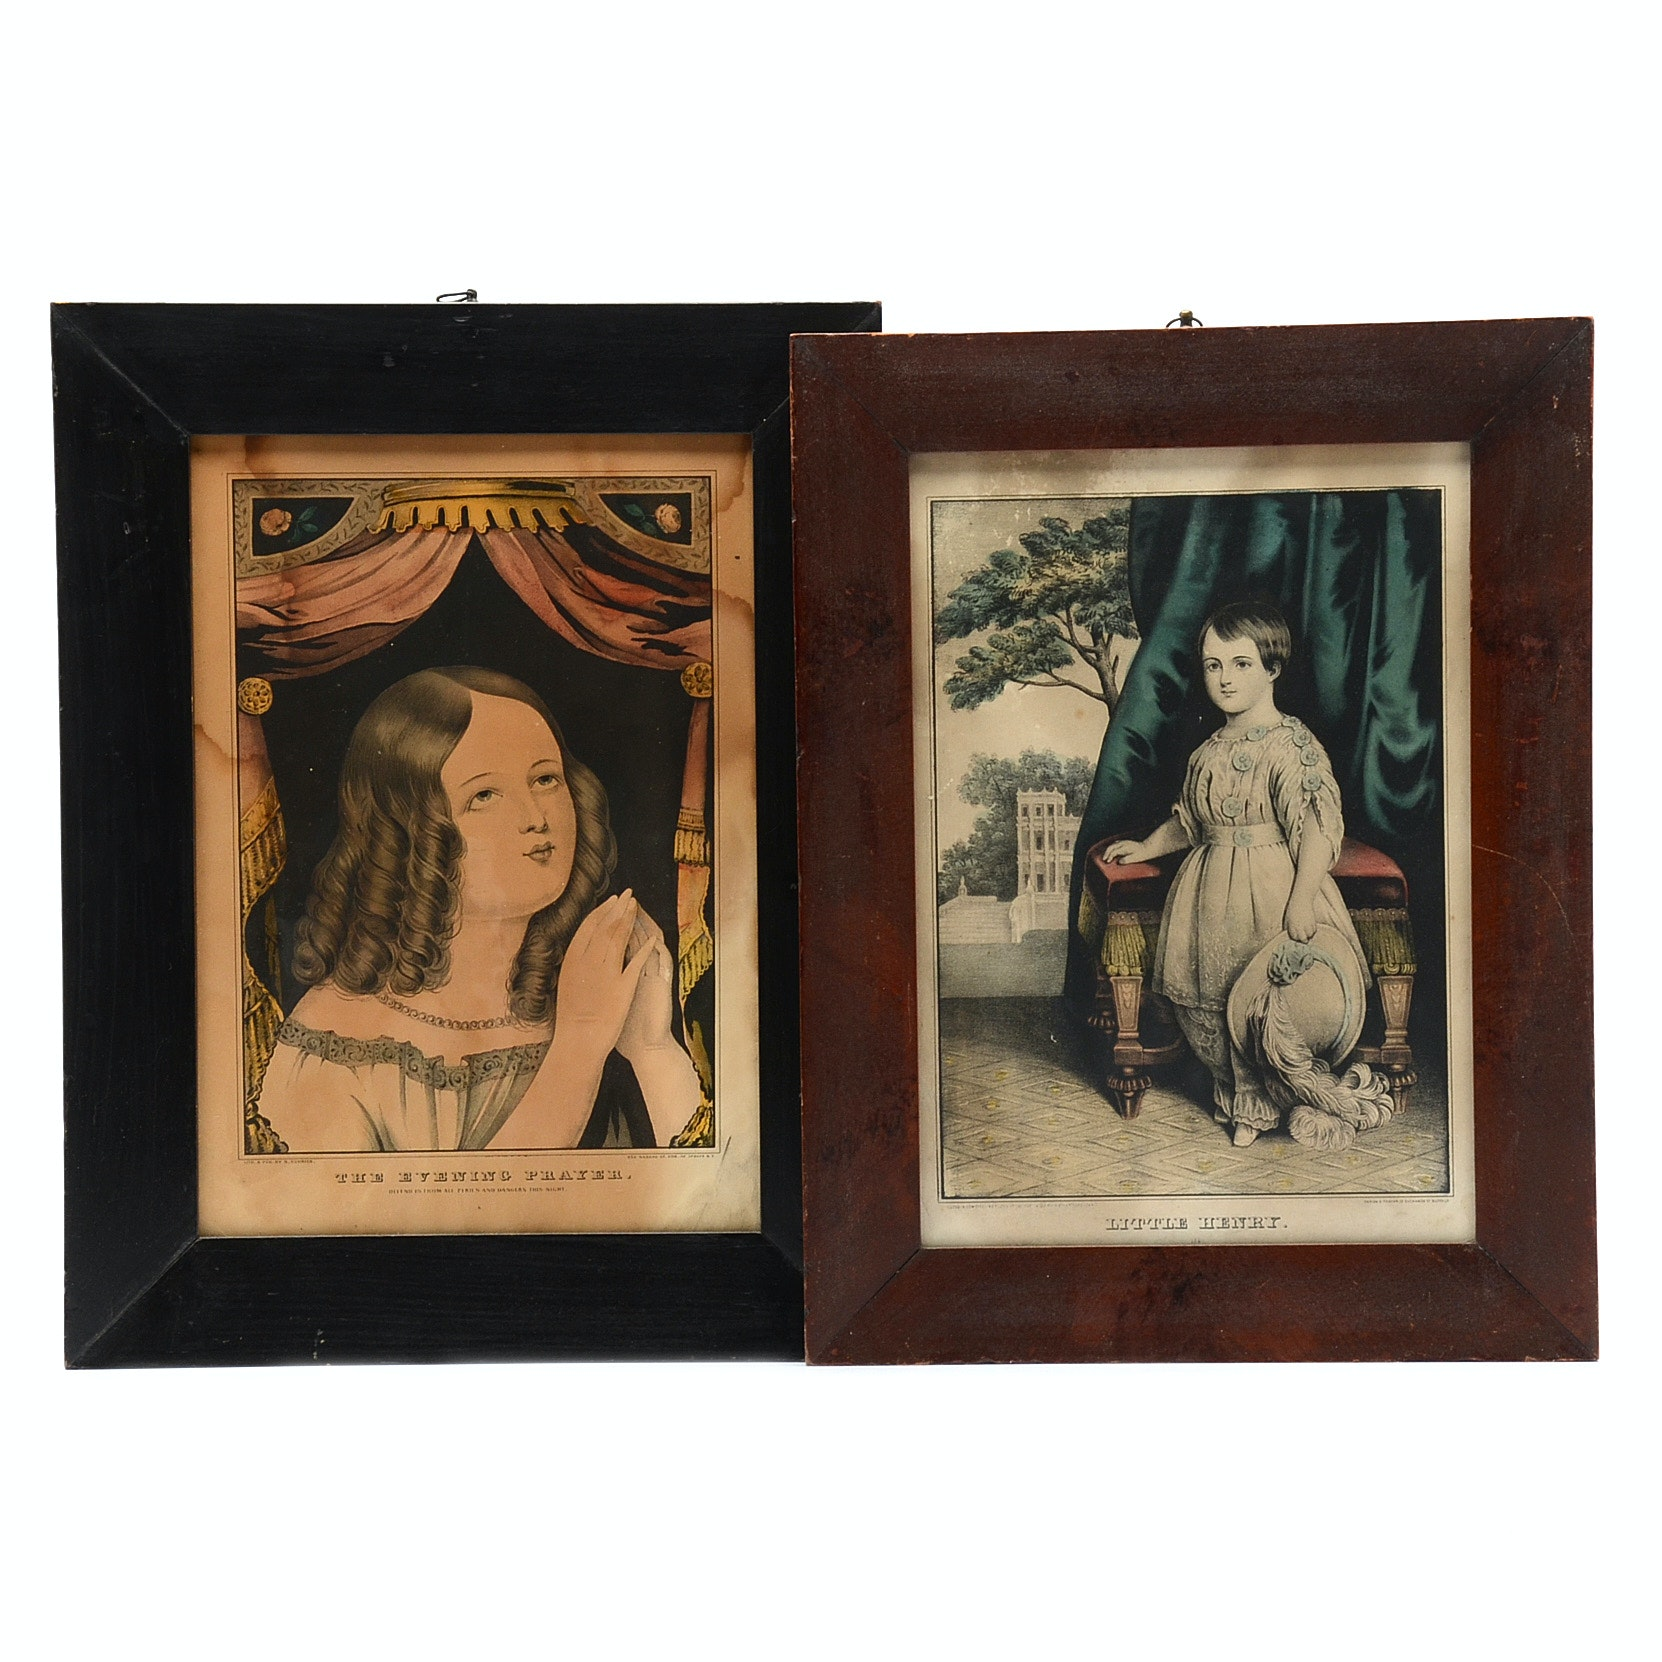 Two Antique Hand-Colored Lithographs